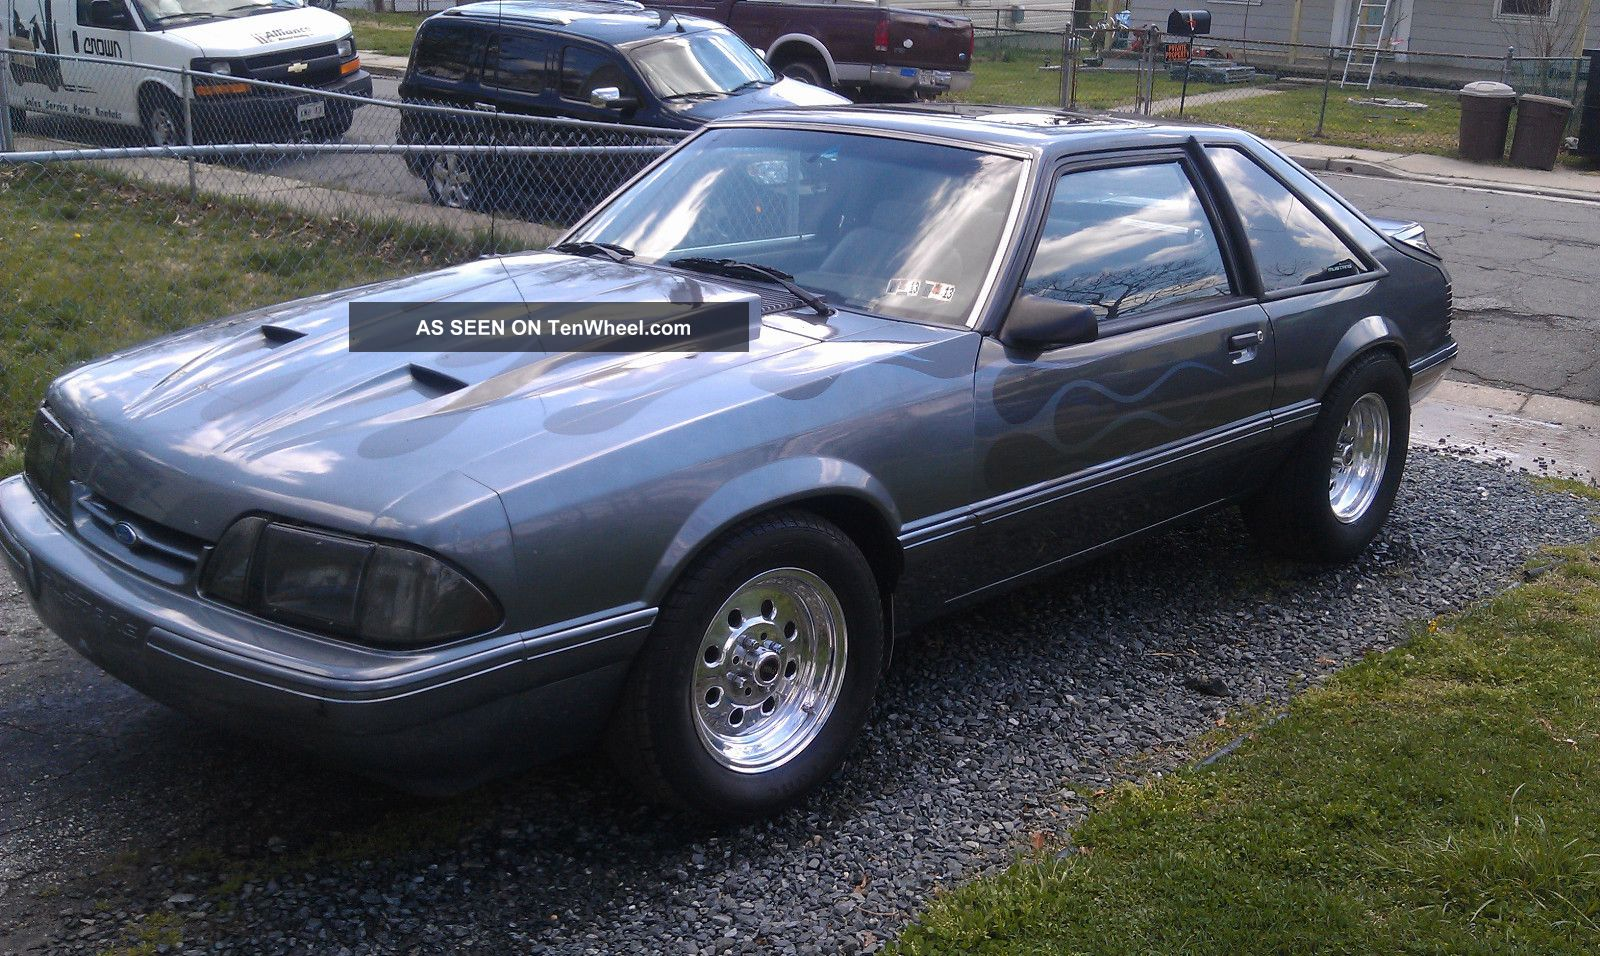 1987 ford mustang lx hatchback 2 door 5 0l. Black Bedroom Furniture Sets. Home Design Ideas